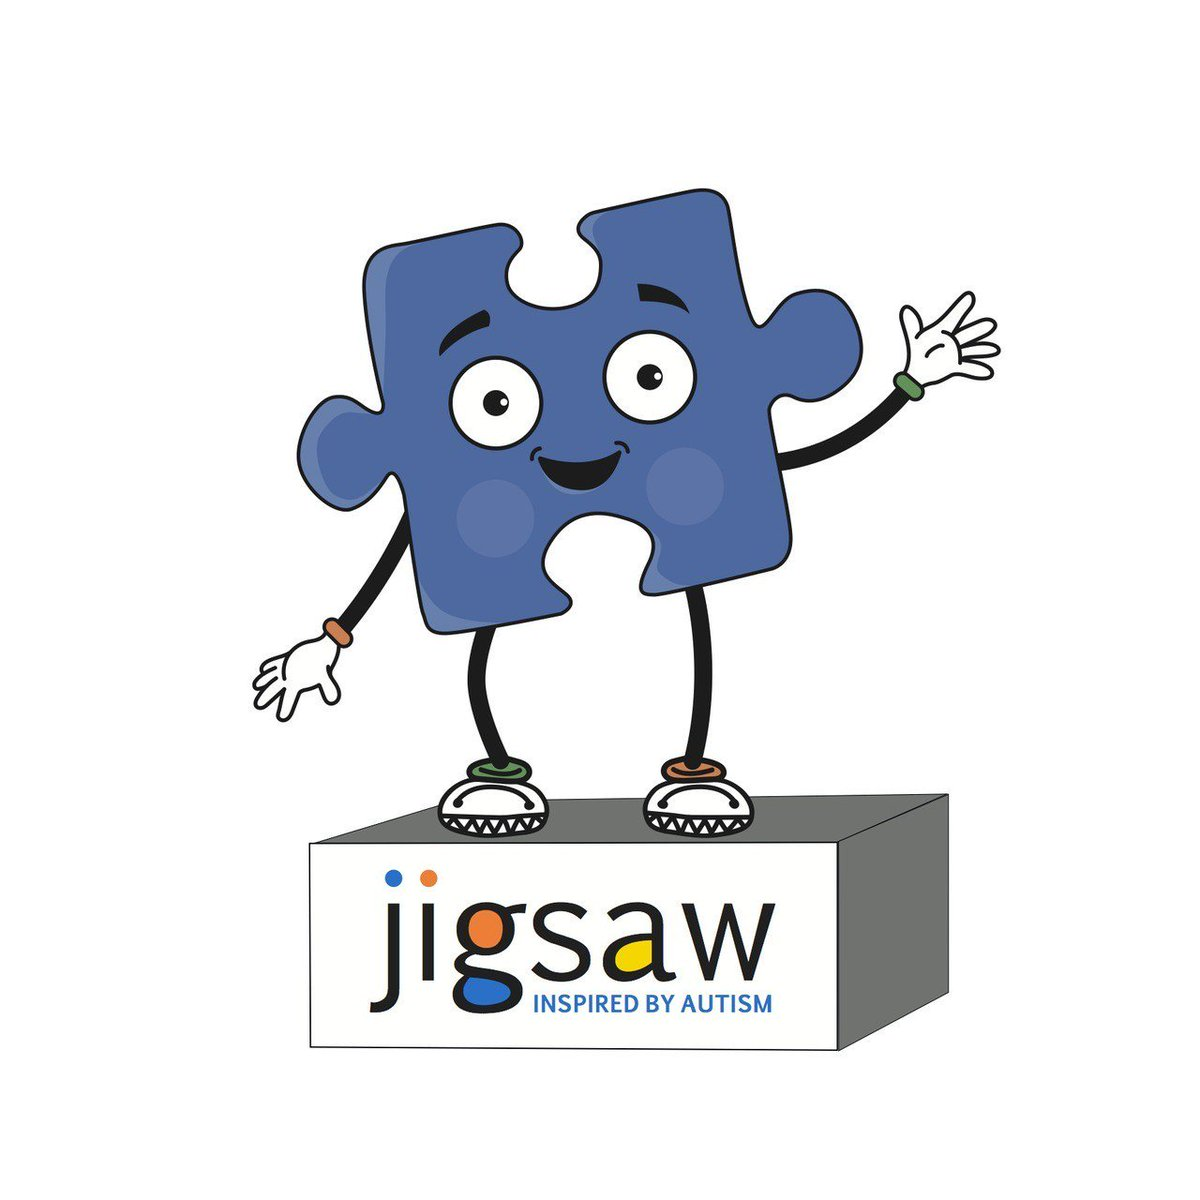 Wishing everyone a great Research Conference at Jigsaw today. #CPD #InspiredByAutism  More on Jigsaw at: http://wu.to/UpnHWT  #charity